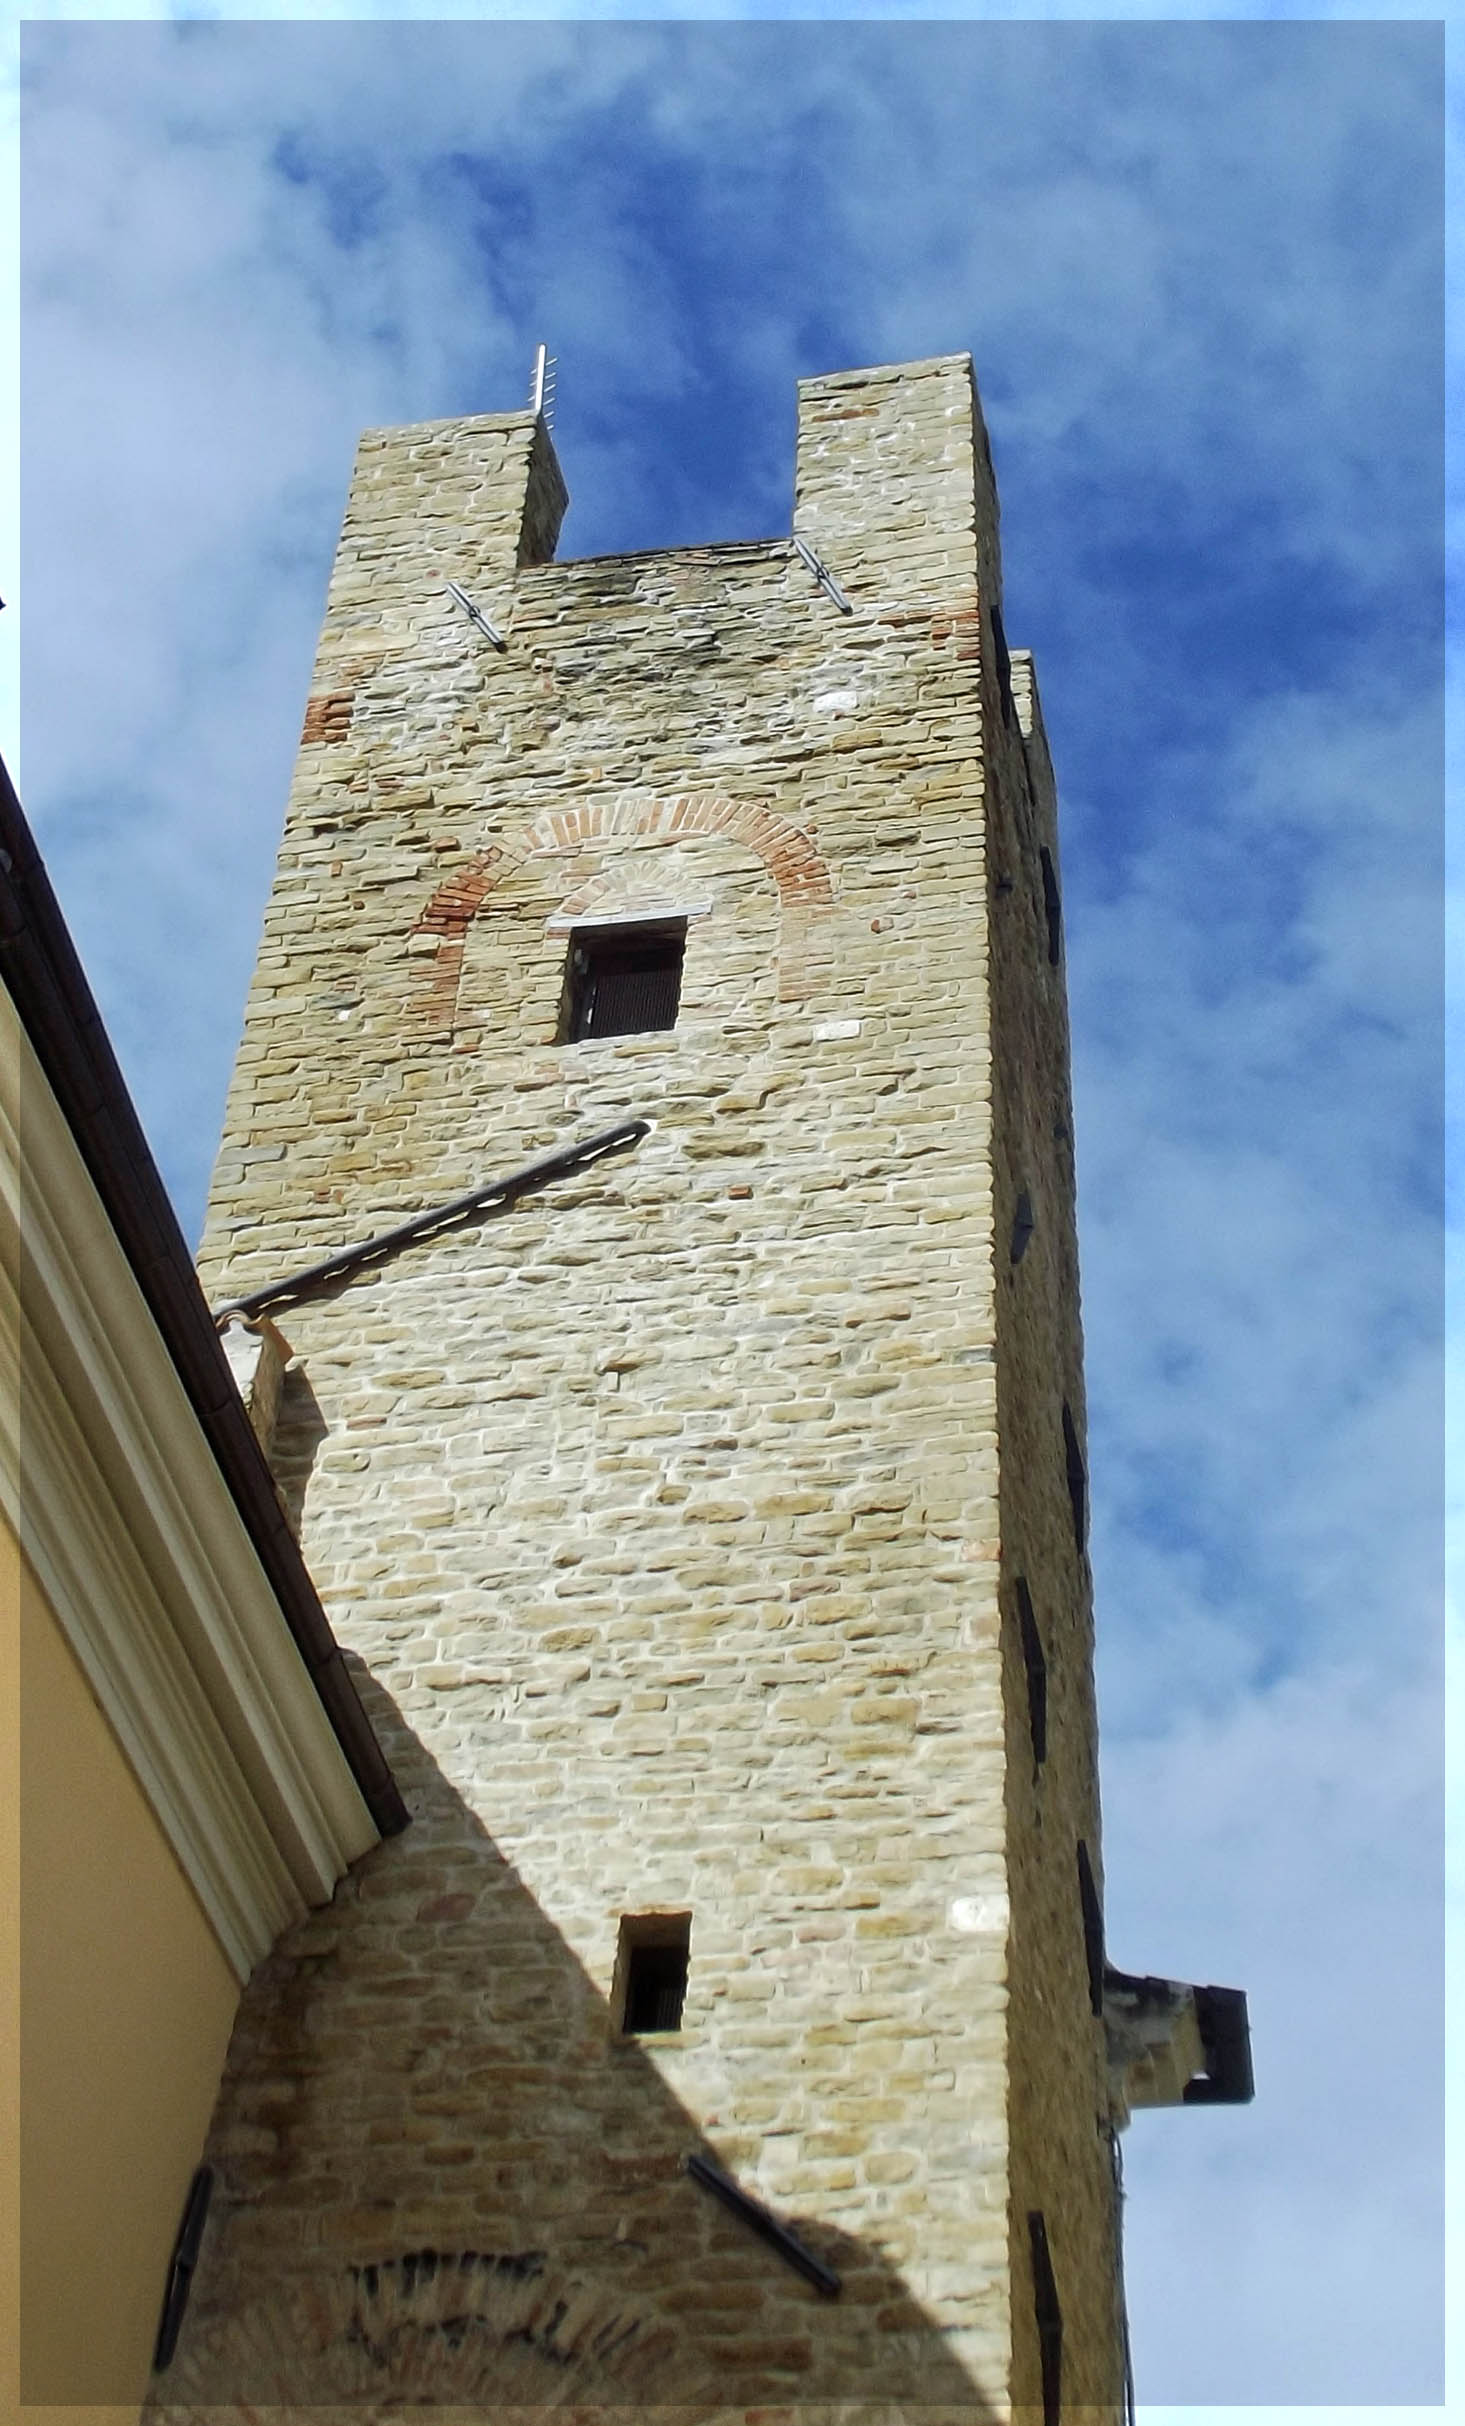 Tall stone tower